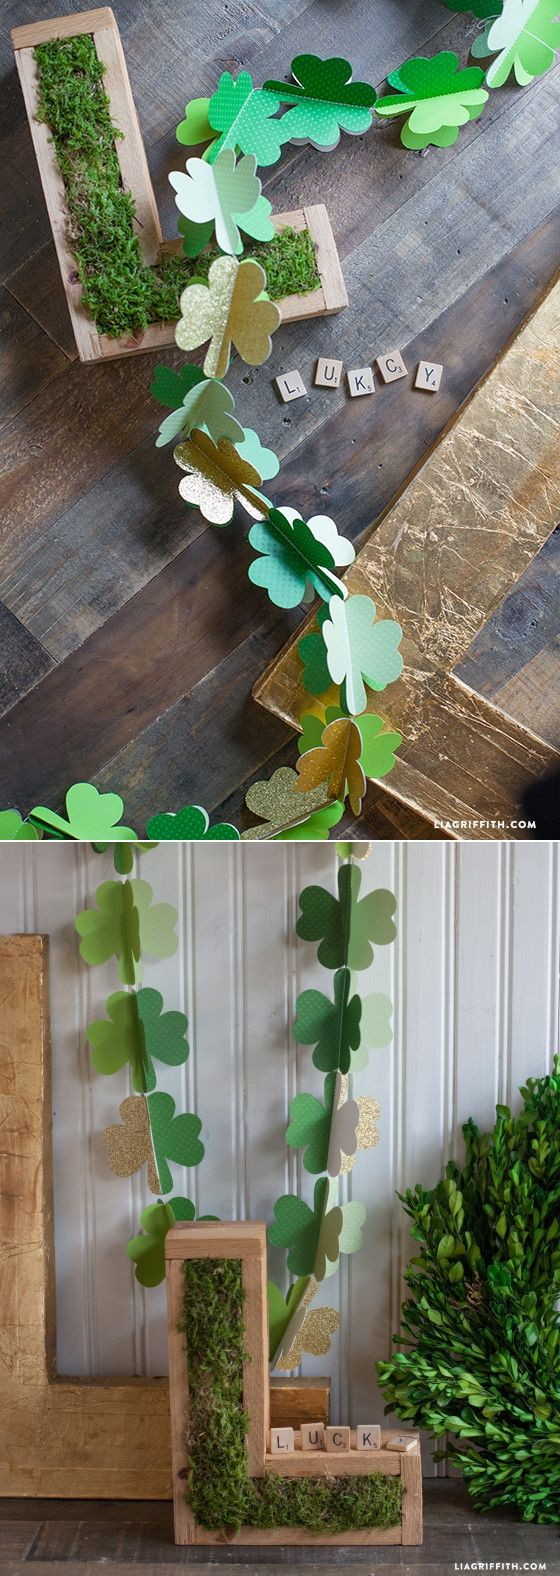 DIY Paper Shamrock Garland at www.LiaGriffith.com